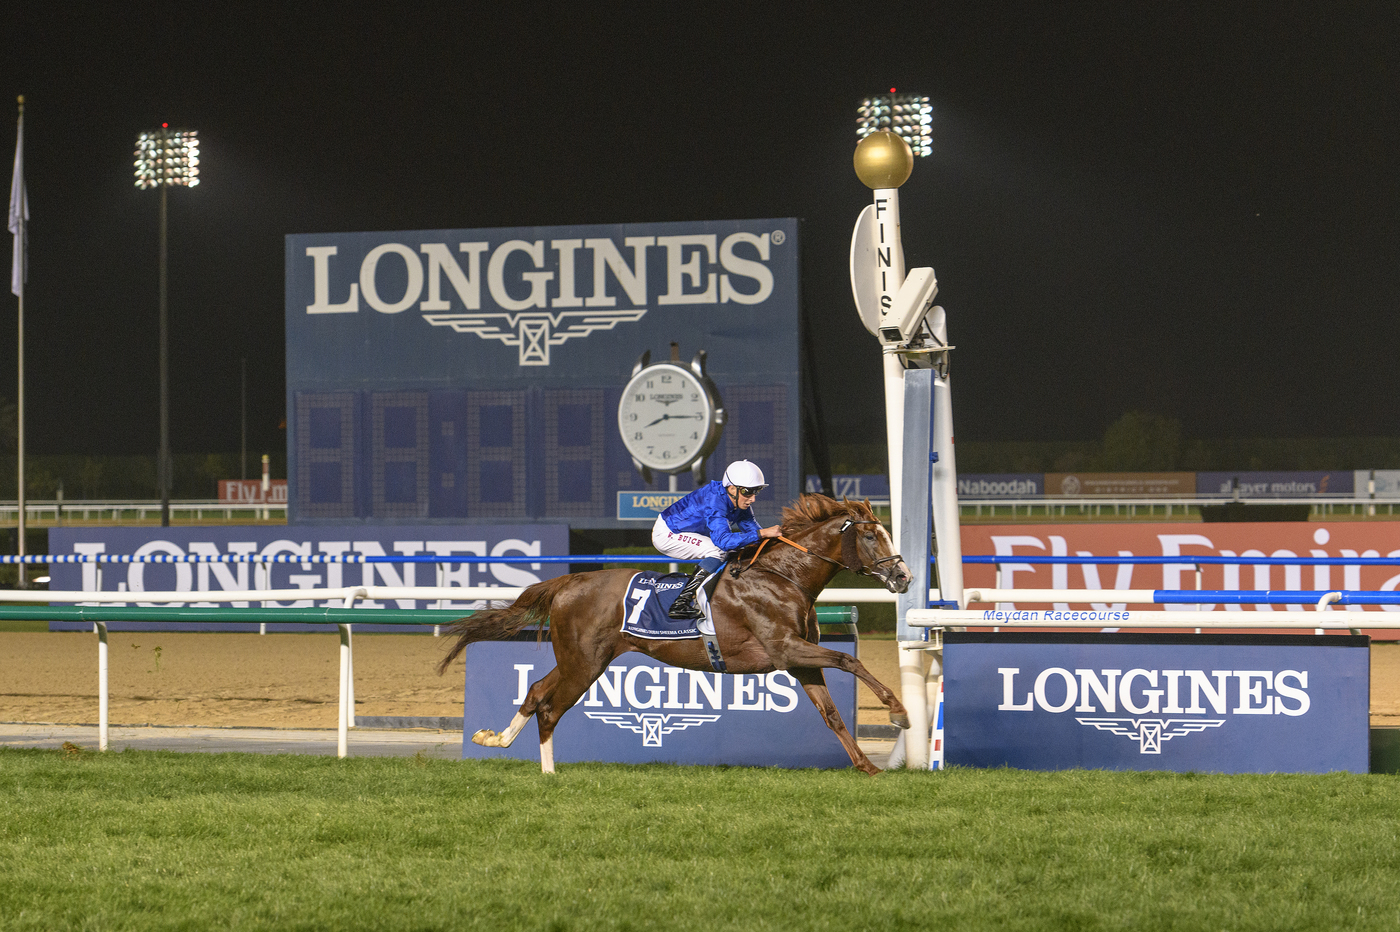 Longines Flat Racing Event: The Dubai World Cup:  Hawkbill steals the limelight in the Longines Dubai Sheema Classic race  11